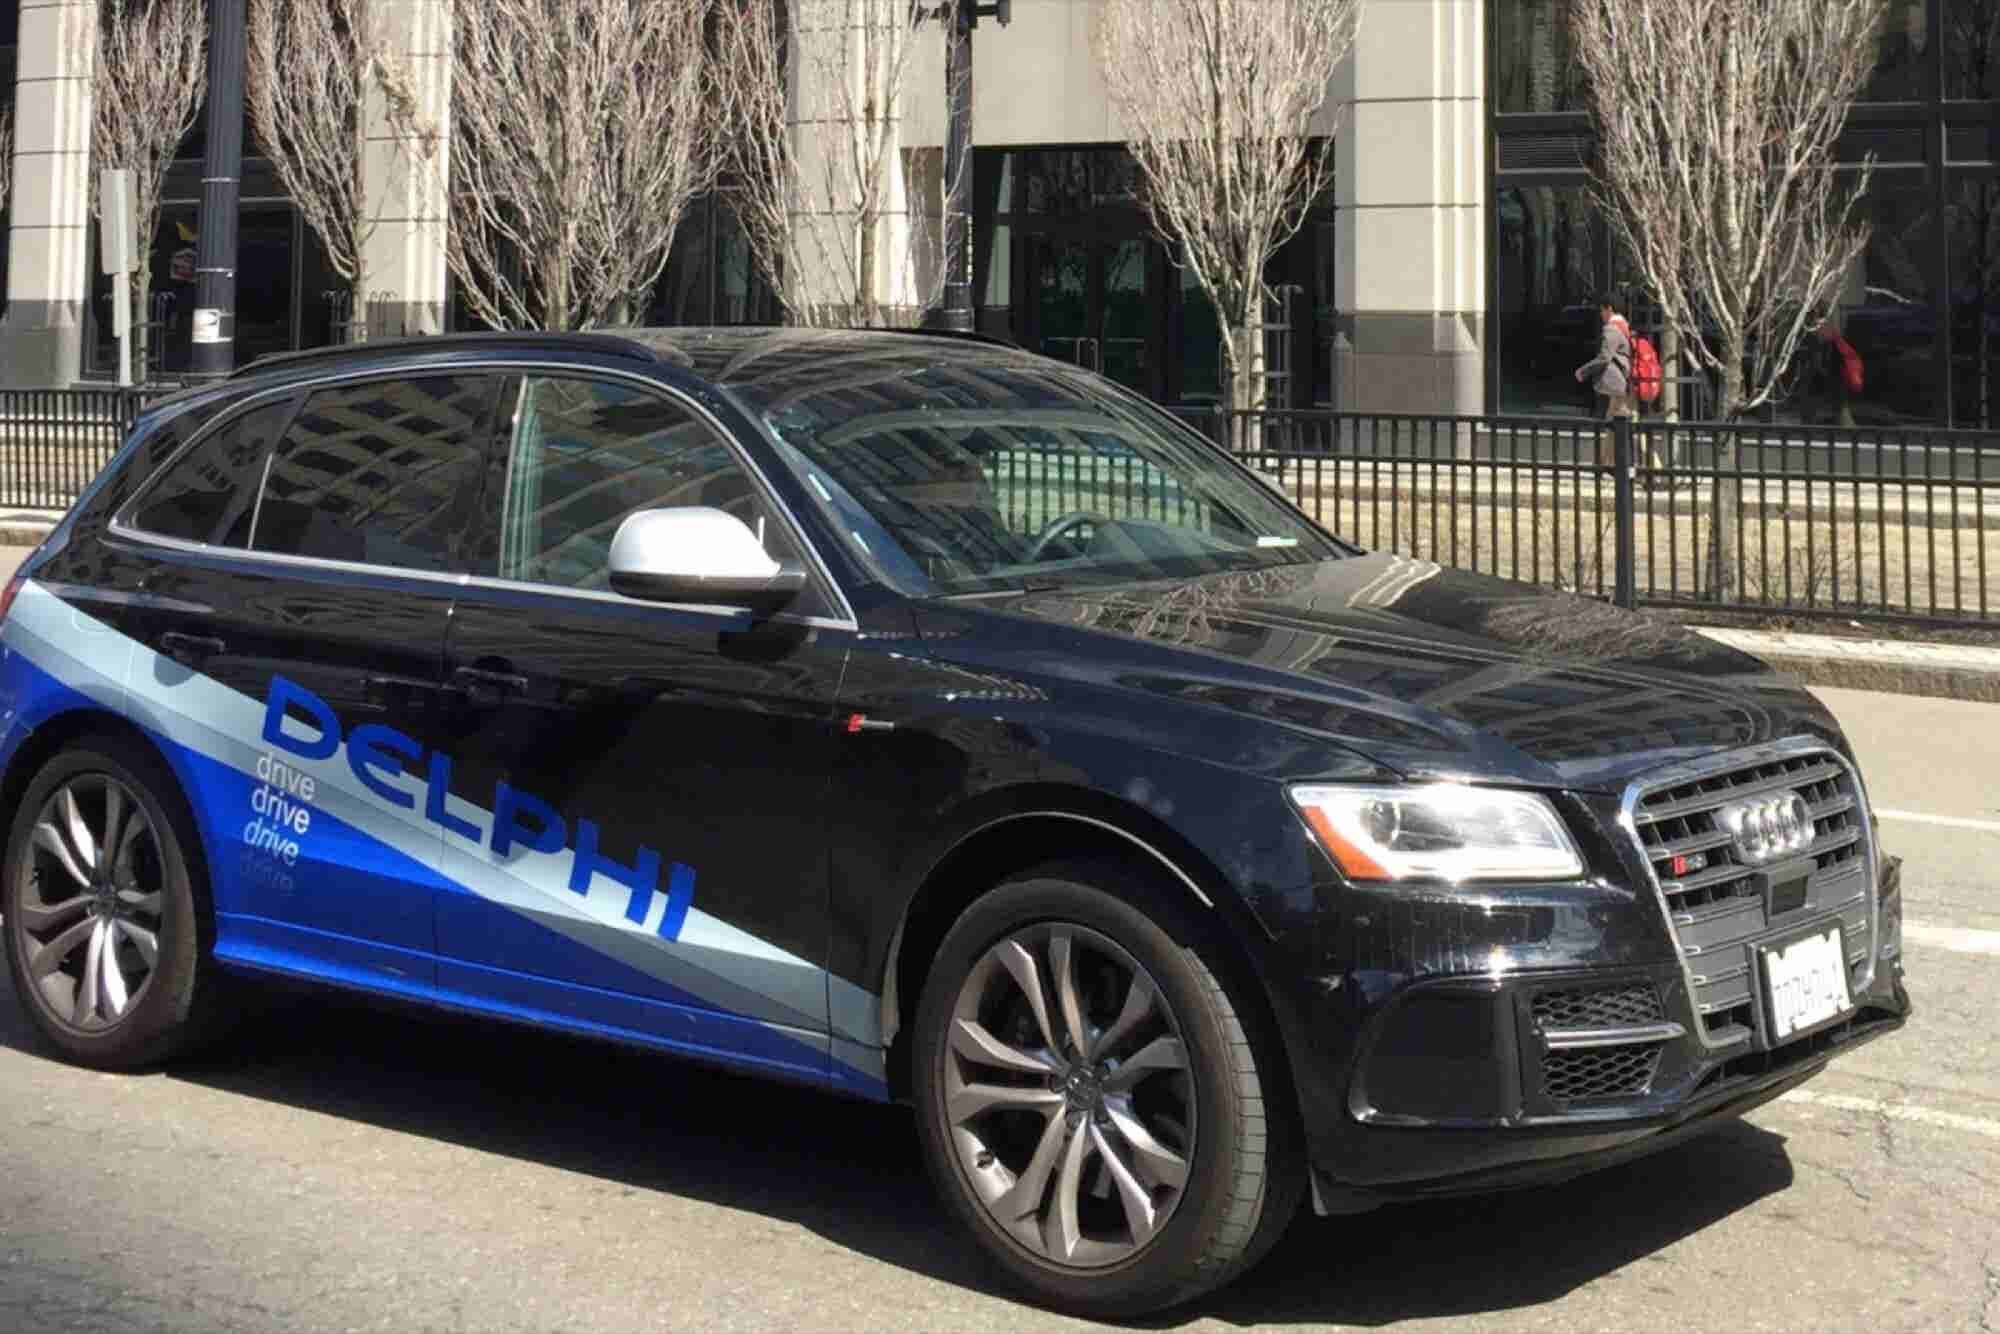 Check Out the Car That Just Drove Itself Across the U.S.